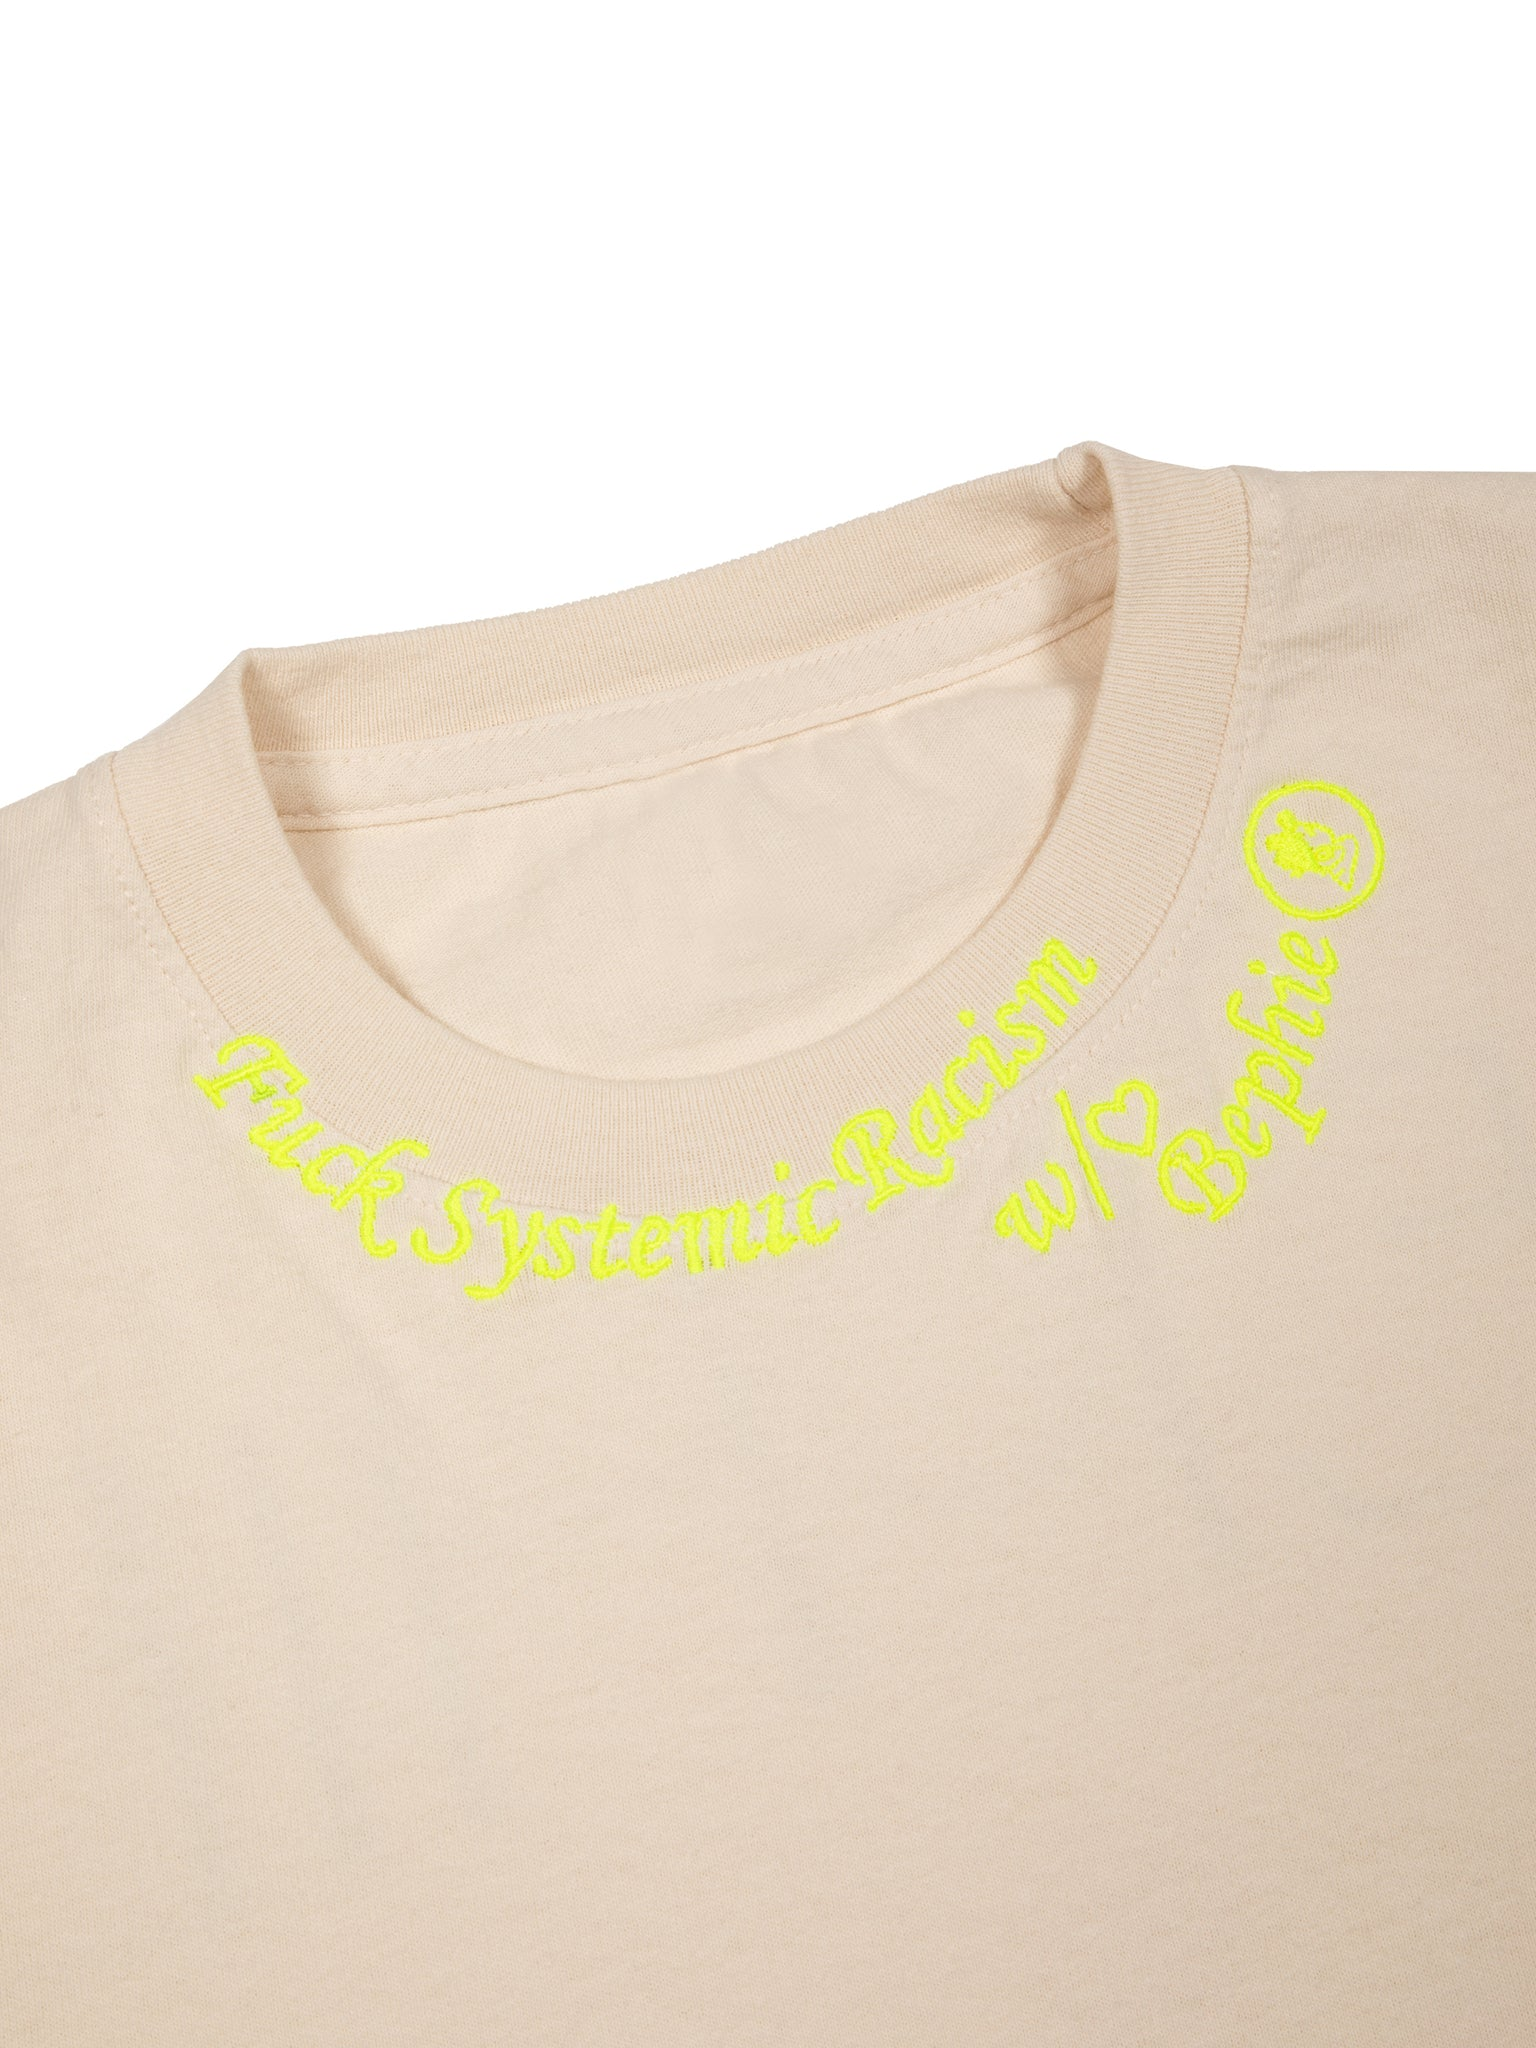 """F*** Systemic Racism"" Short Sleeve Tee"